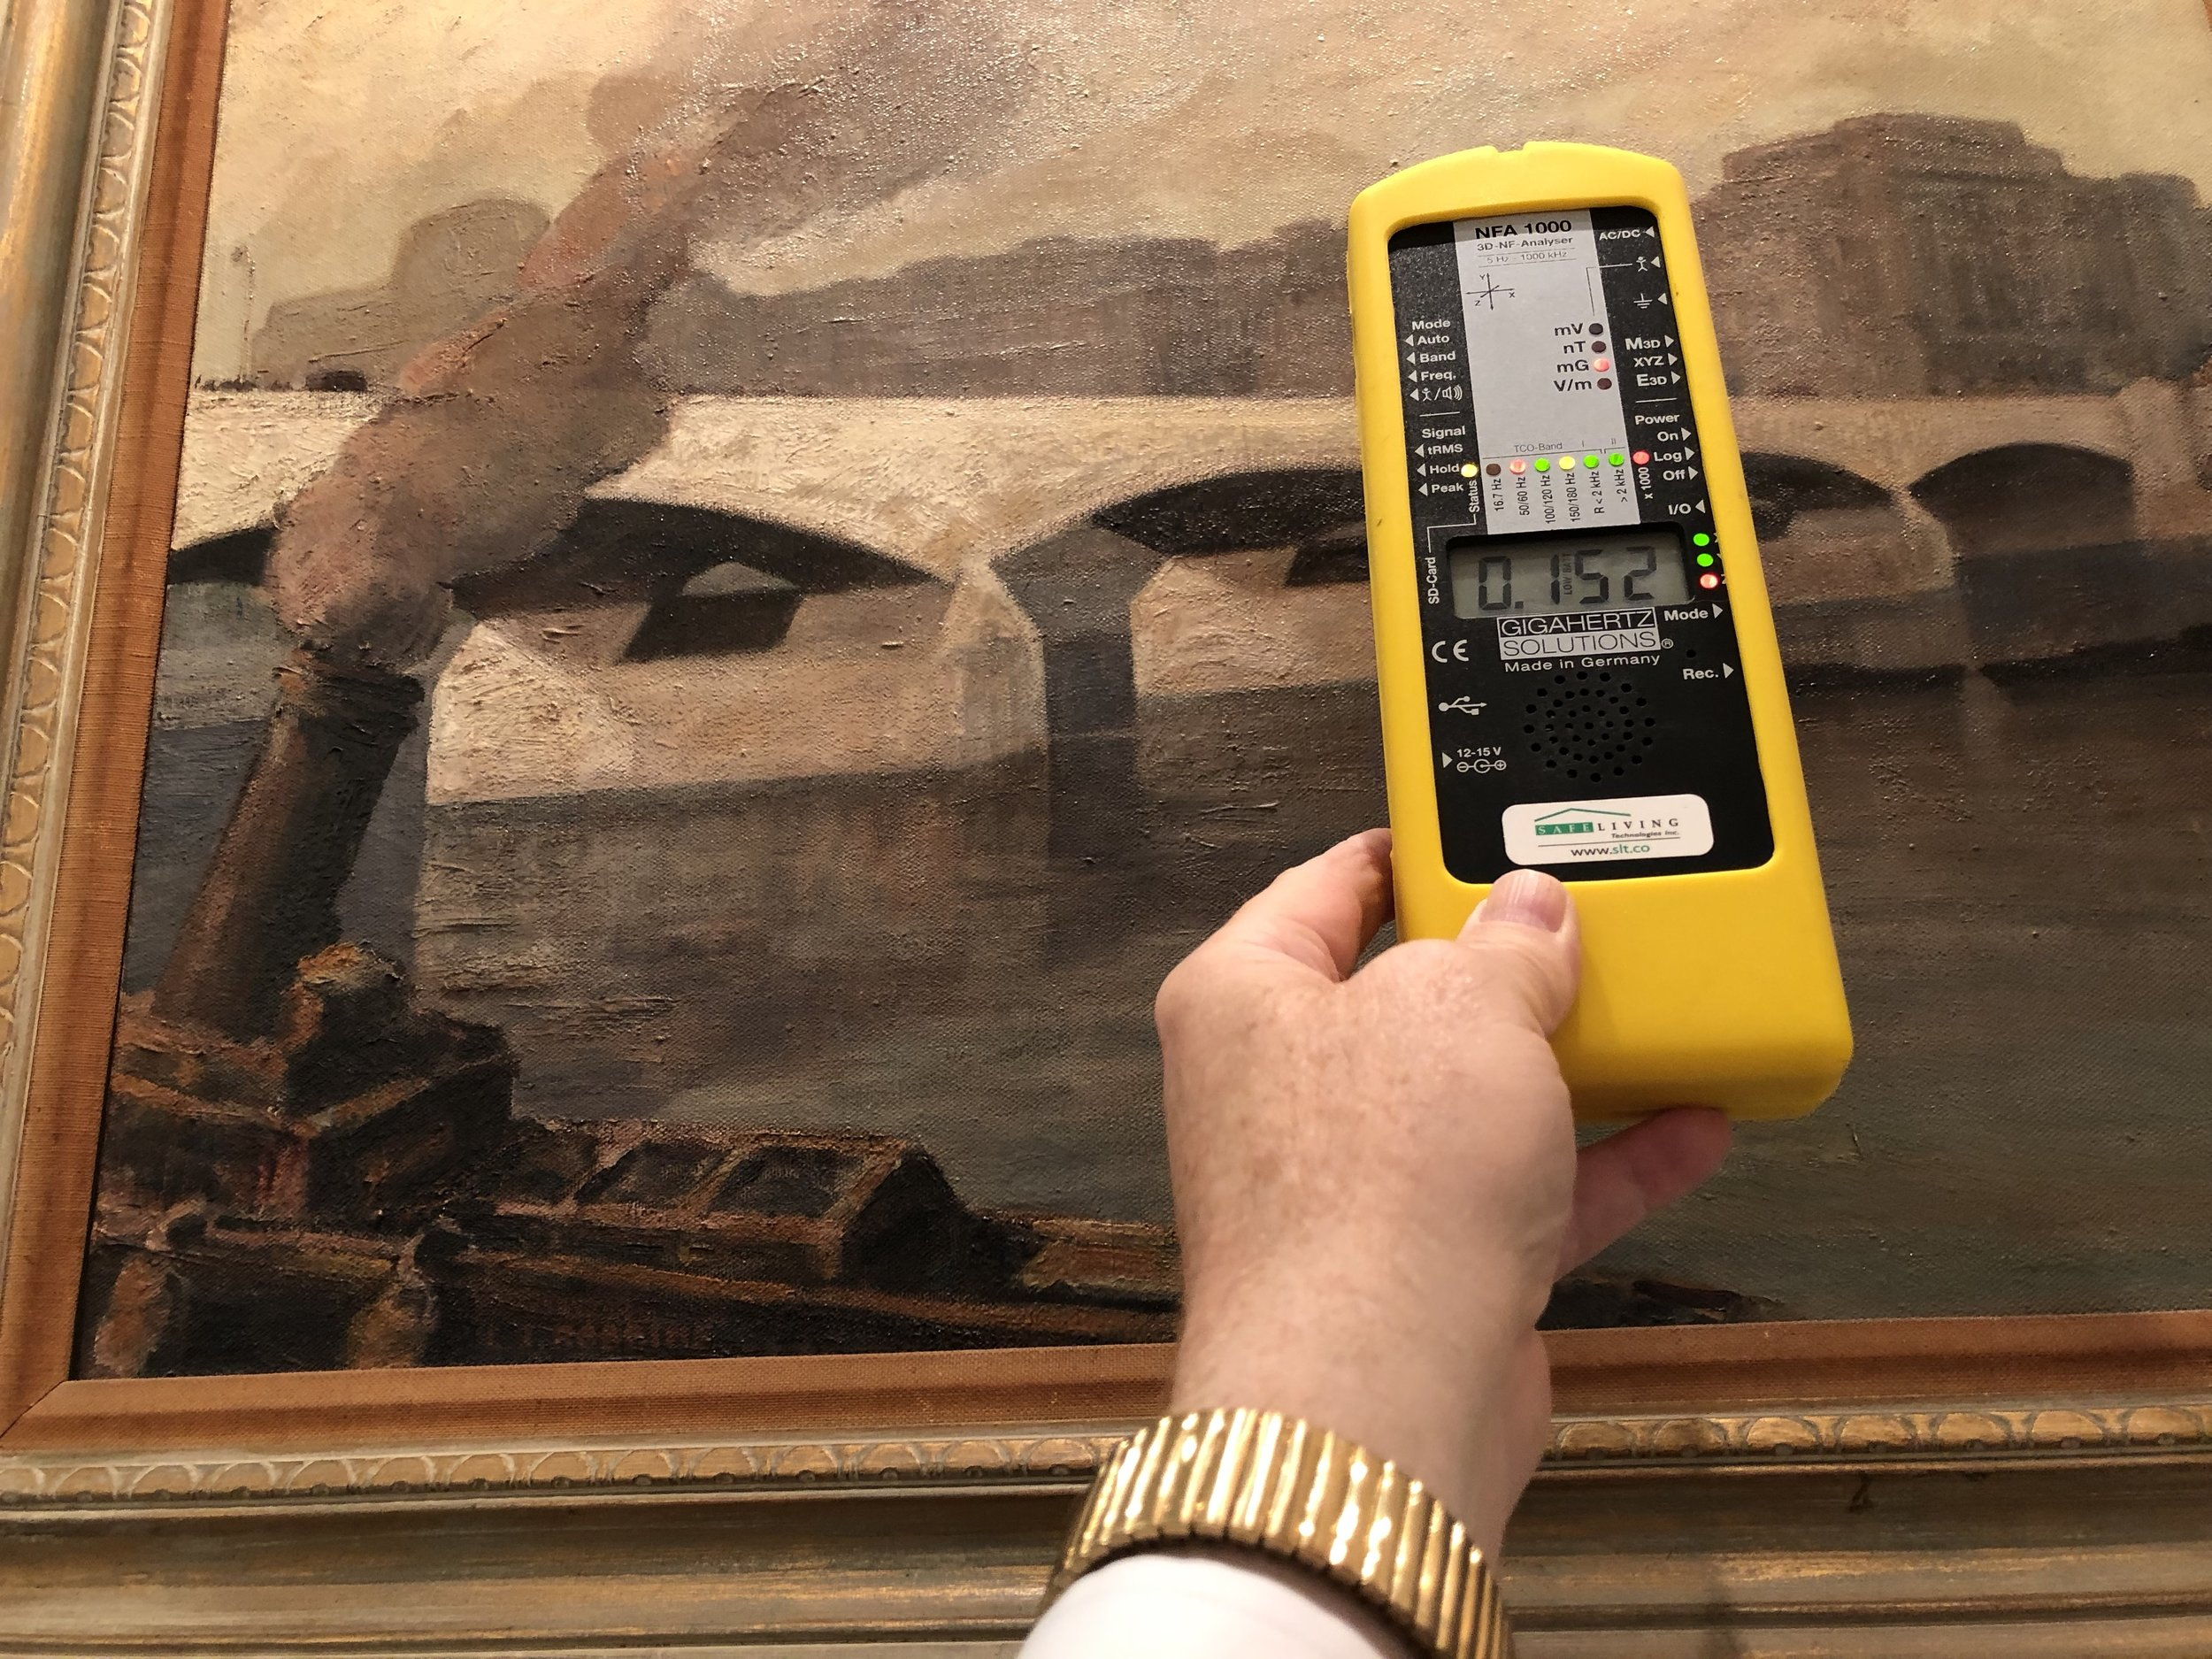 Using one of our NFA 1000's, we detected what turned out to be a wiring error behind this painting. We are measuring an ELF (Extremely Low Frequency) 60 Hertz AC Magnetic Field's Flux Density at 152 mG (milligauss) TRMS.